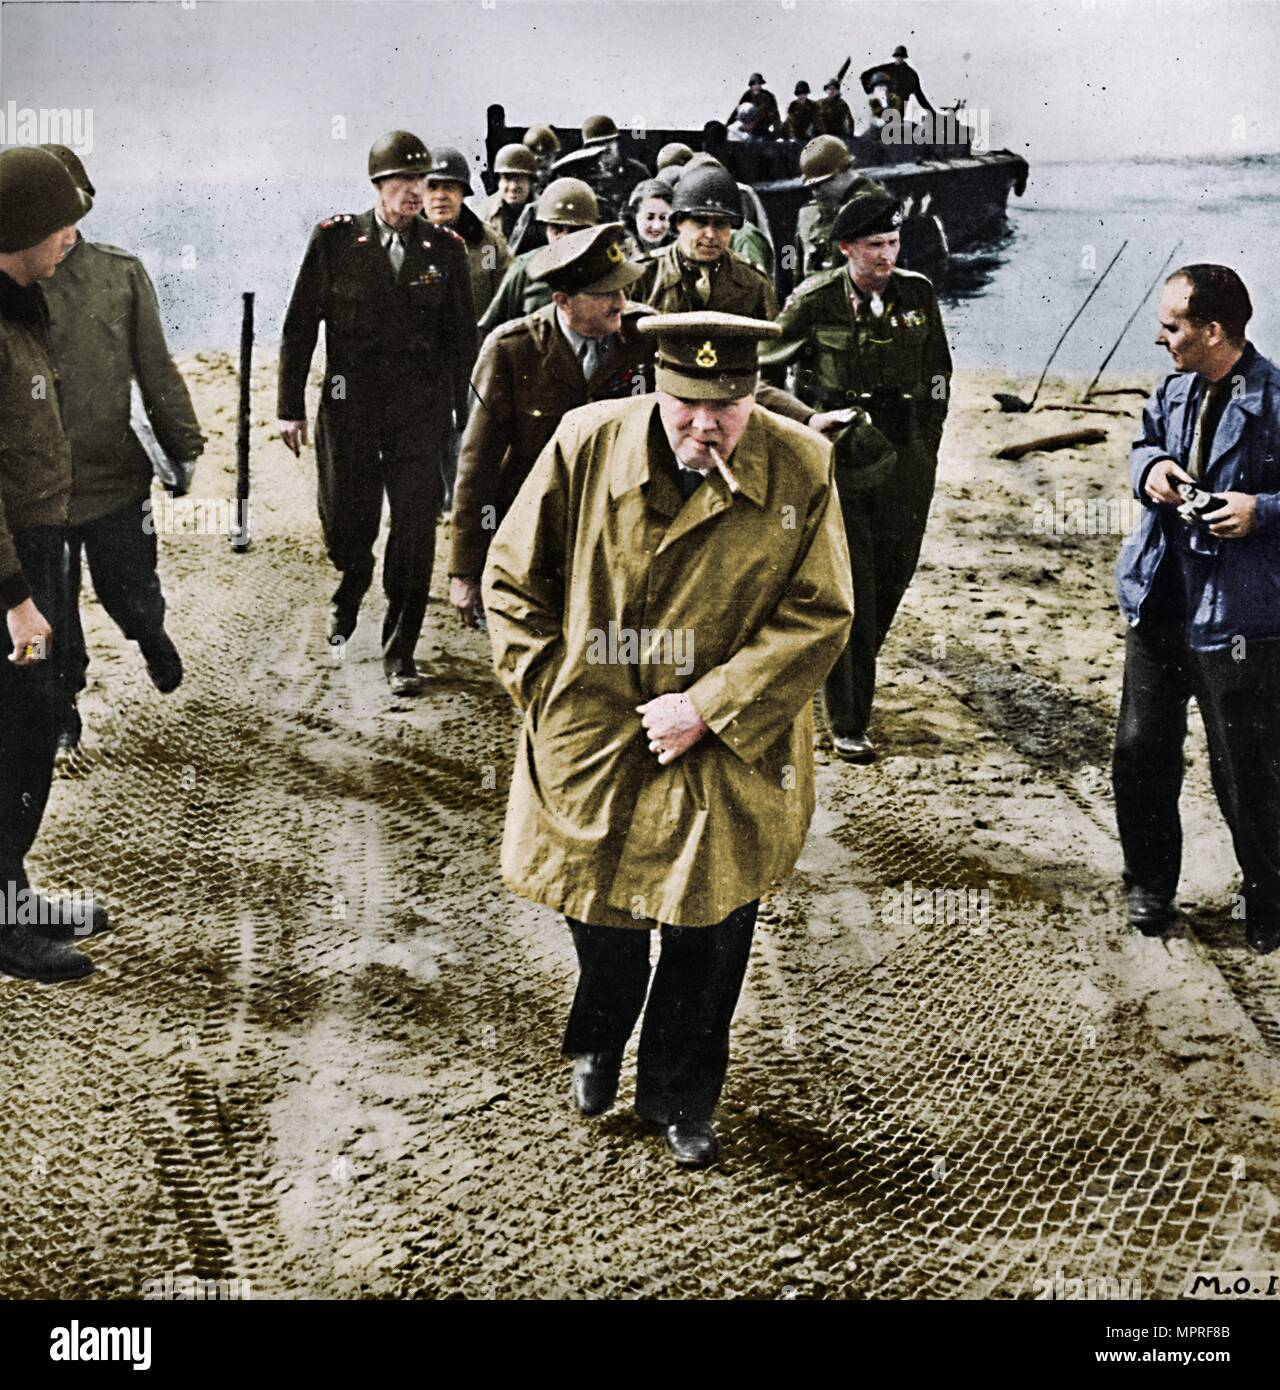 'Winston Churchill across the Rhine. Outwards into Germany! Onwards to Victory!', 1945. Artist: Unknown. - Stock Image